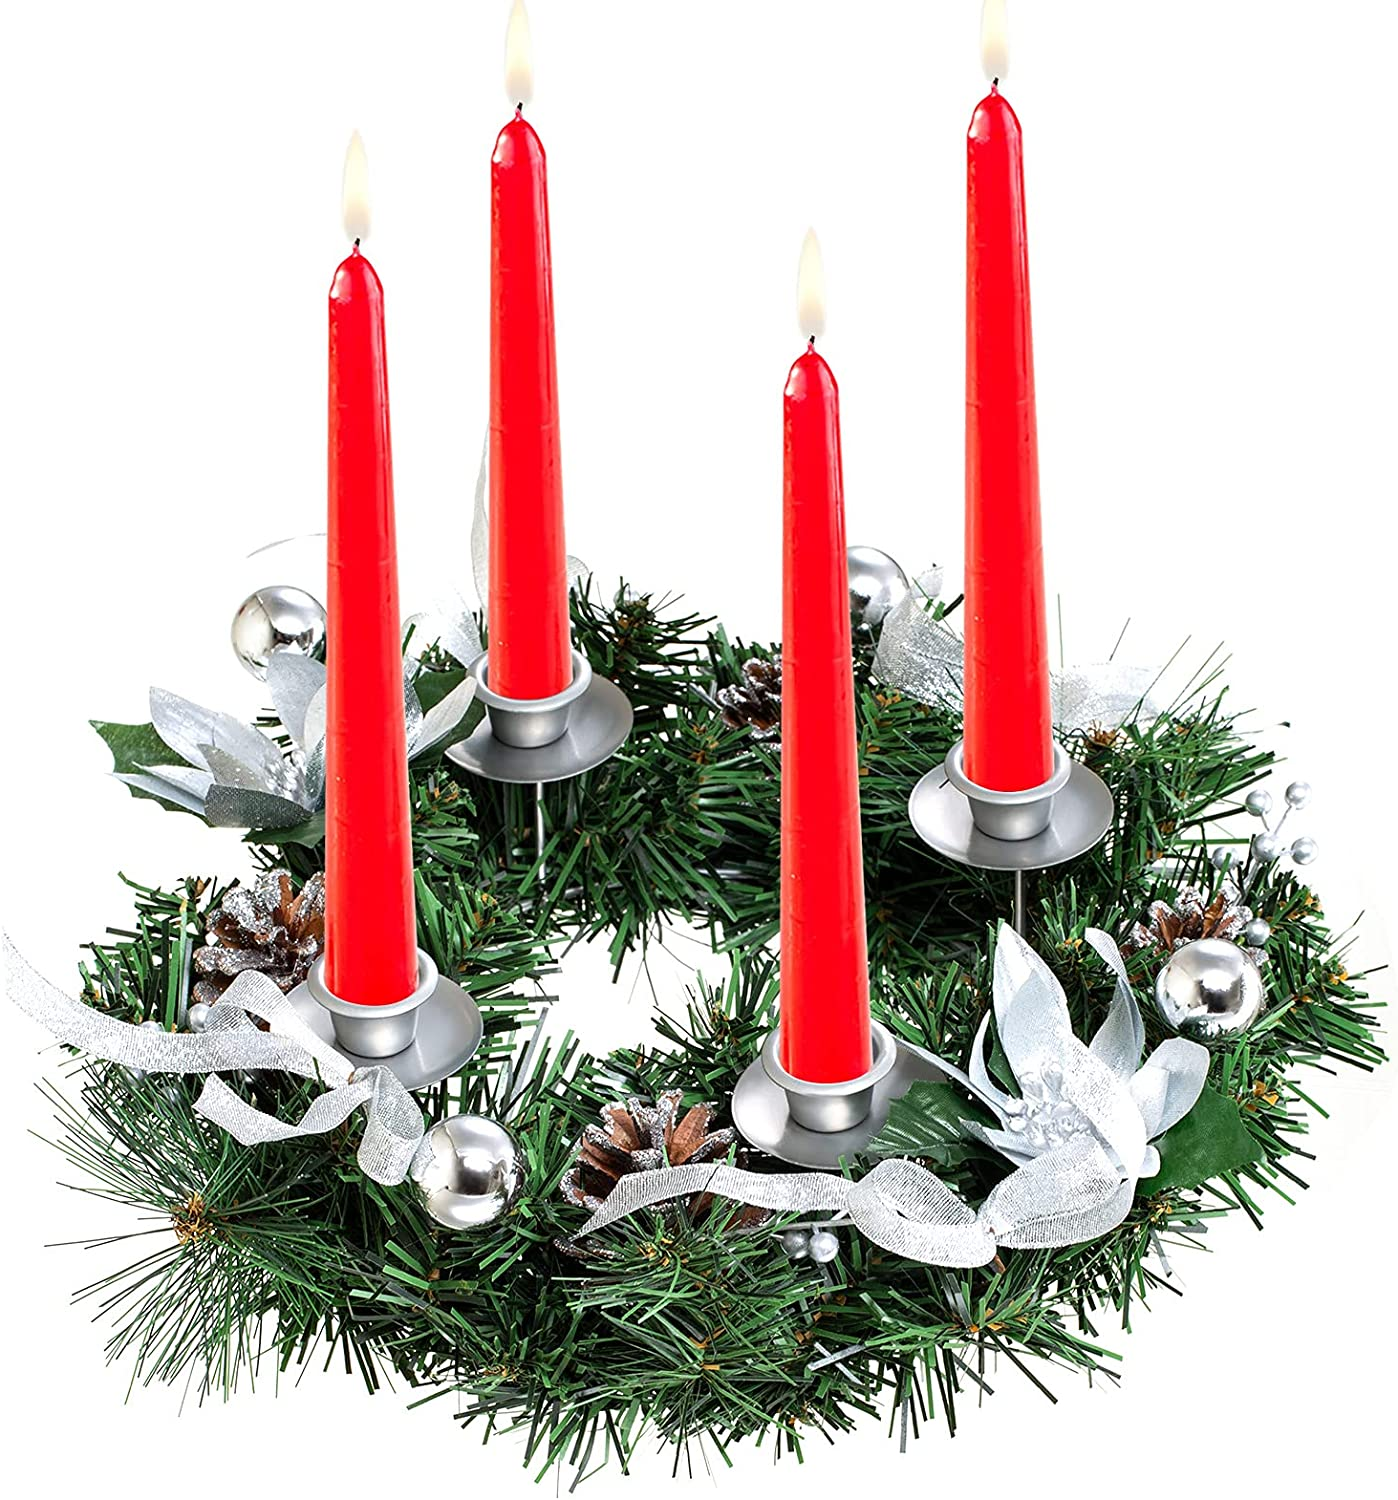 Sucpur Christmas Advent Candlestick 13.3inch Wreath Candles Hol Sale price List price